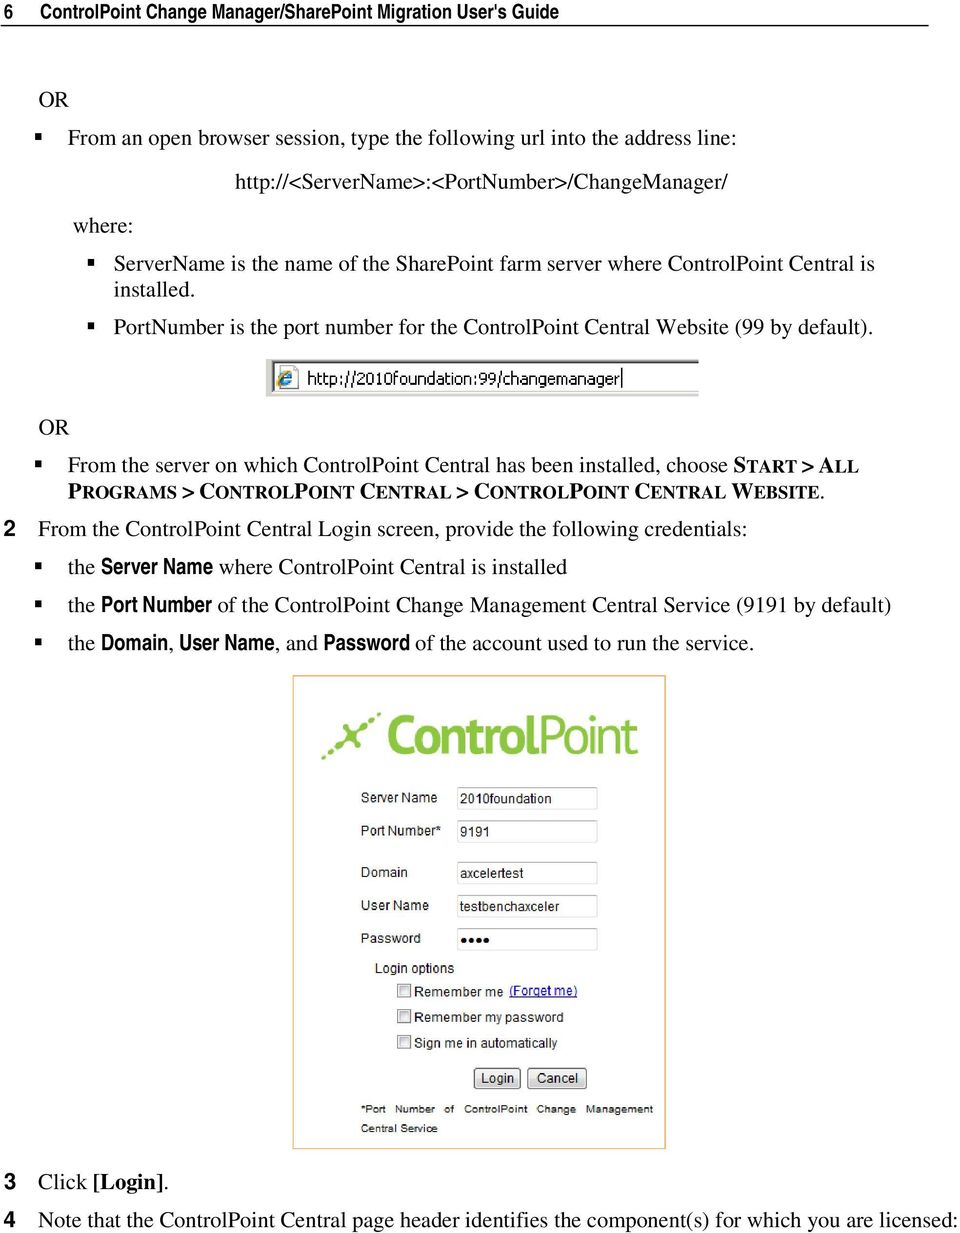 OR From the server on which ControlPoint Central has been installed, choose START > ALL PROGRAMS > CONTROLPOINT CENTRAL > CONTROLPOINT CENTRAL WEBSITE.